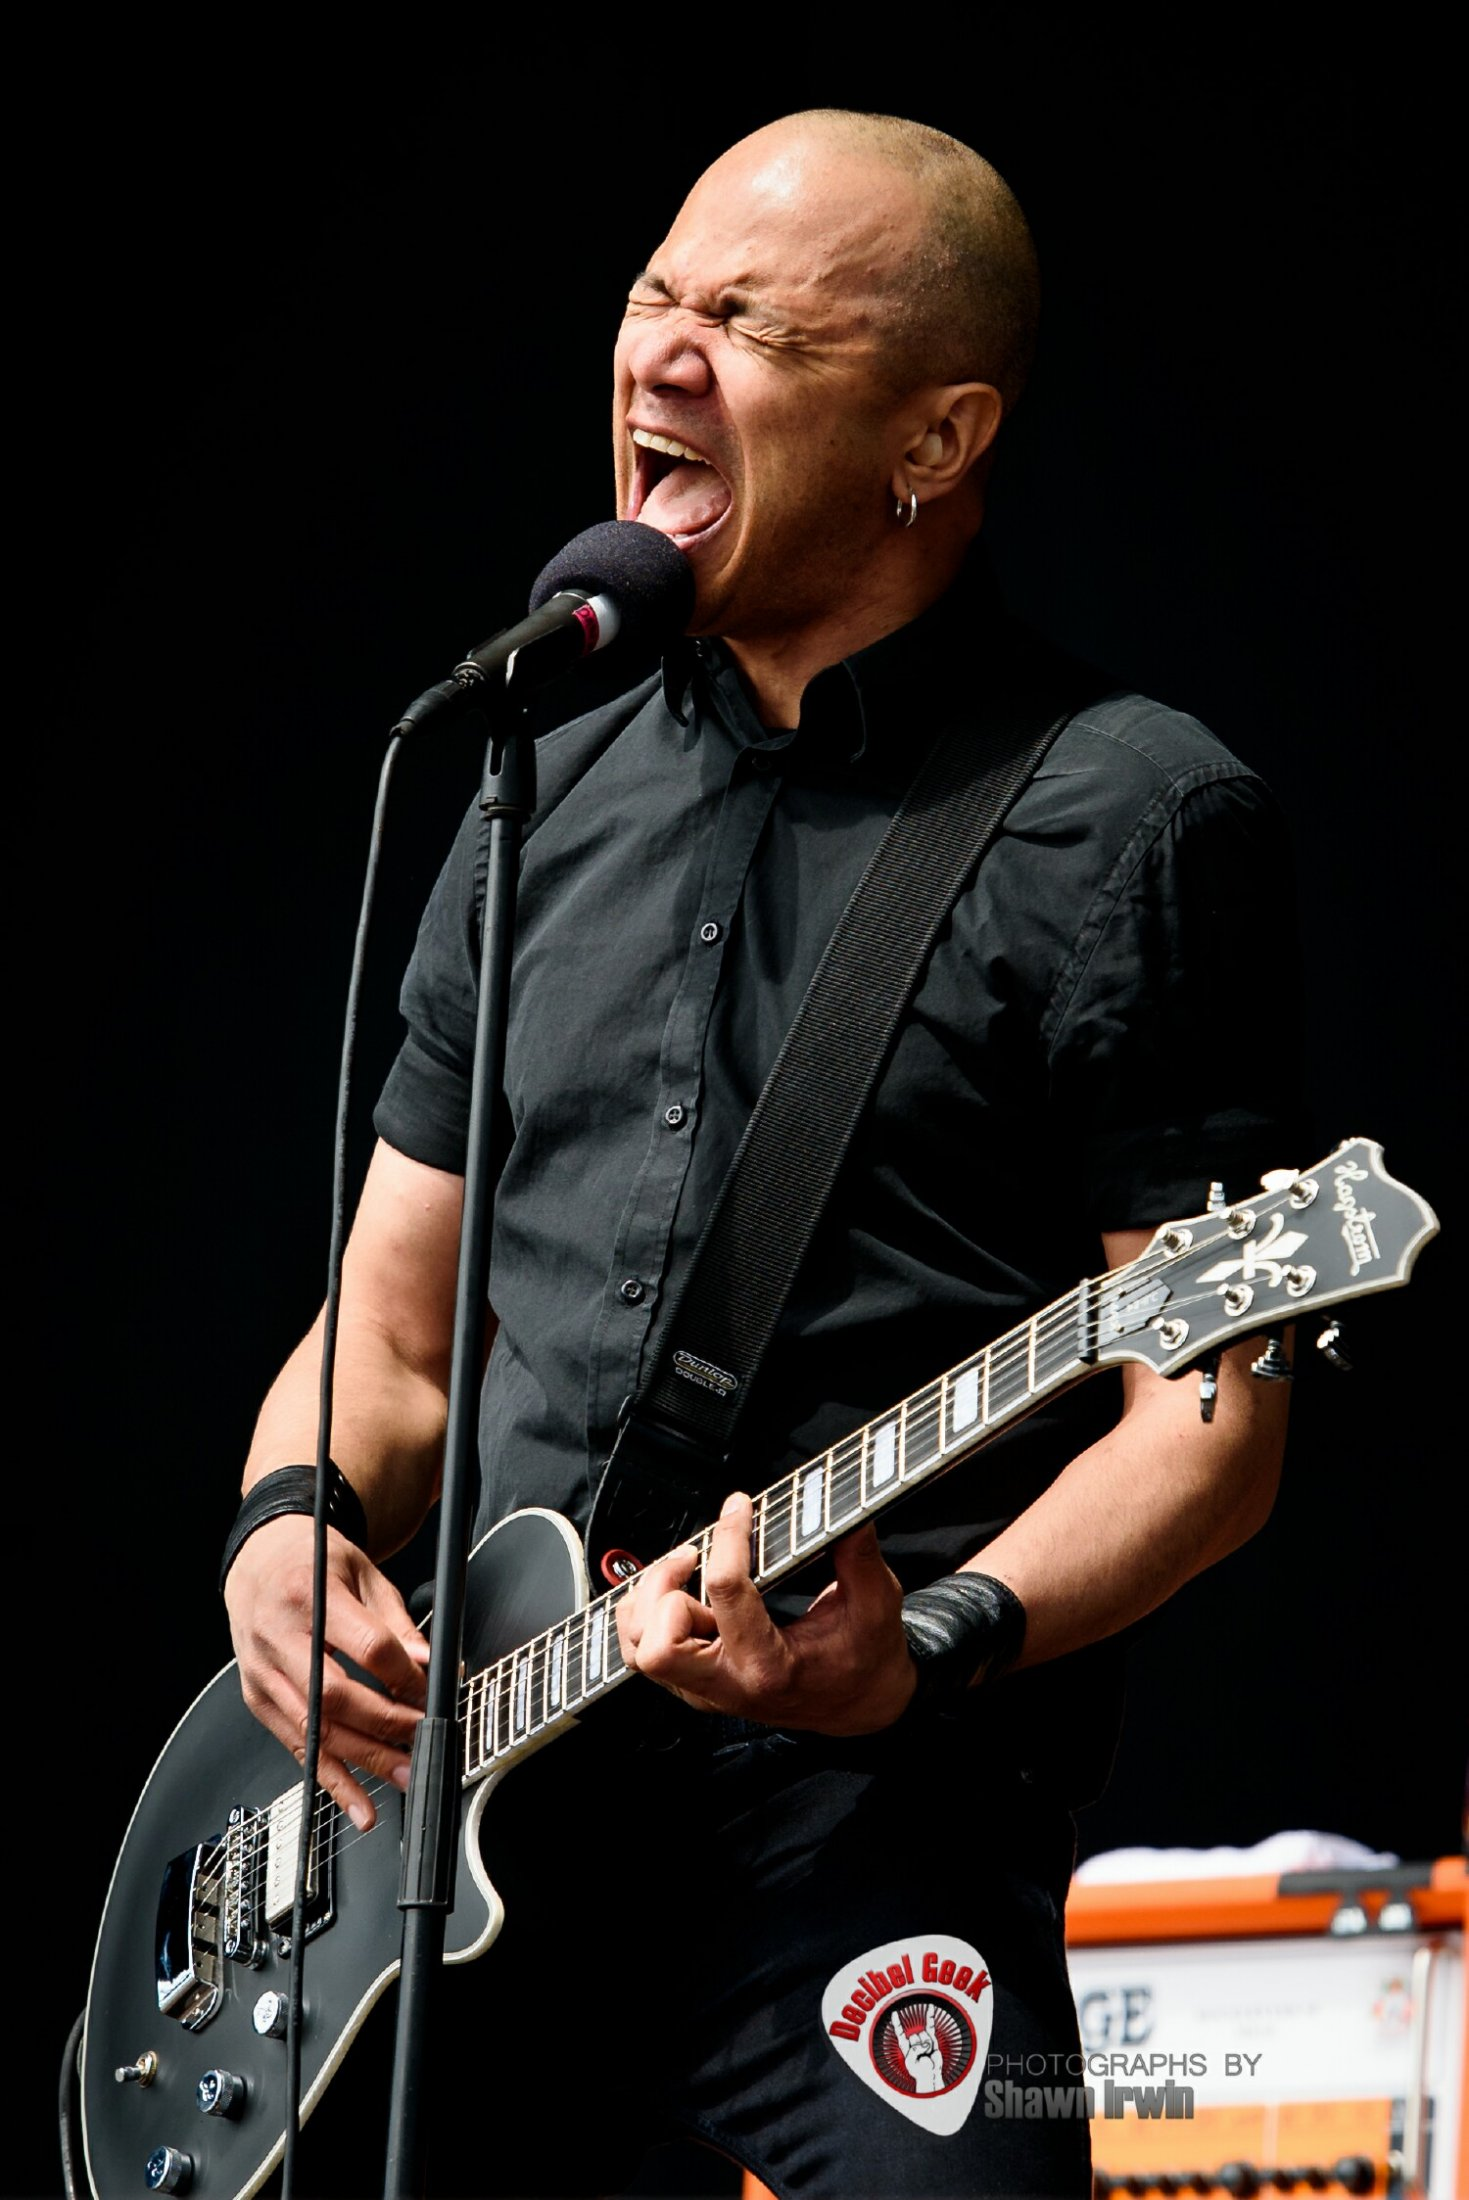 Danko Jones #12-SRF 2019-Shawn Irwin